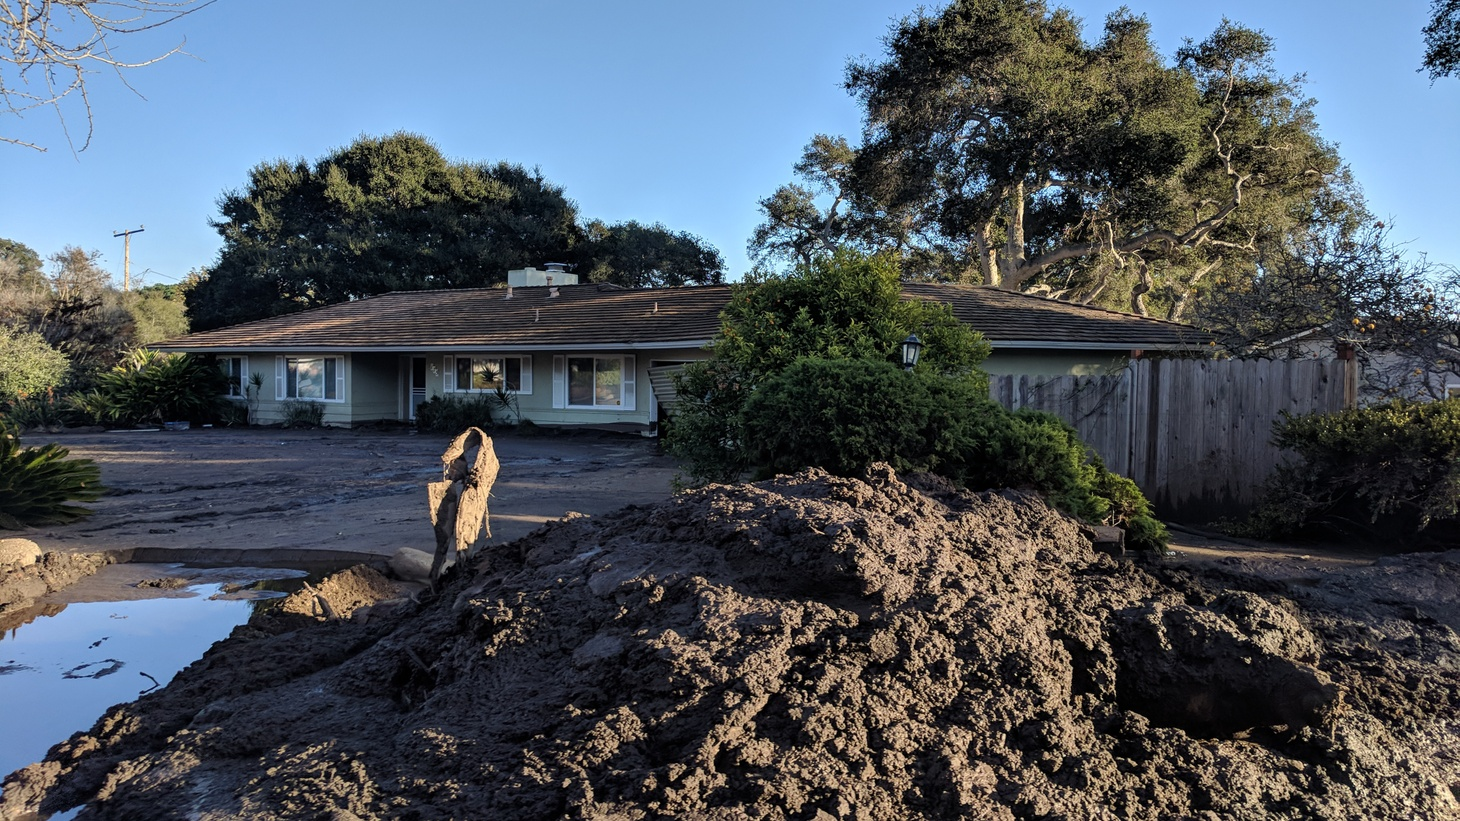 At a vineyard in Los Olivos, a winemaker is using a special type of fertilizer: mud from the January 9th debris flow in Montecito.